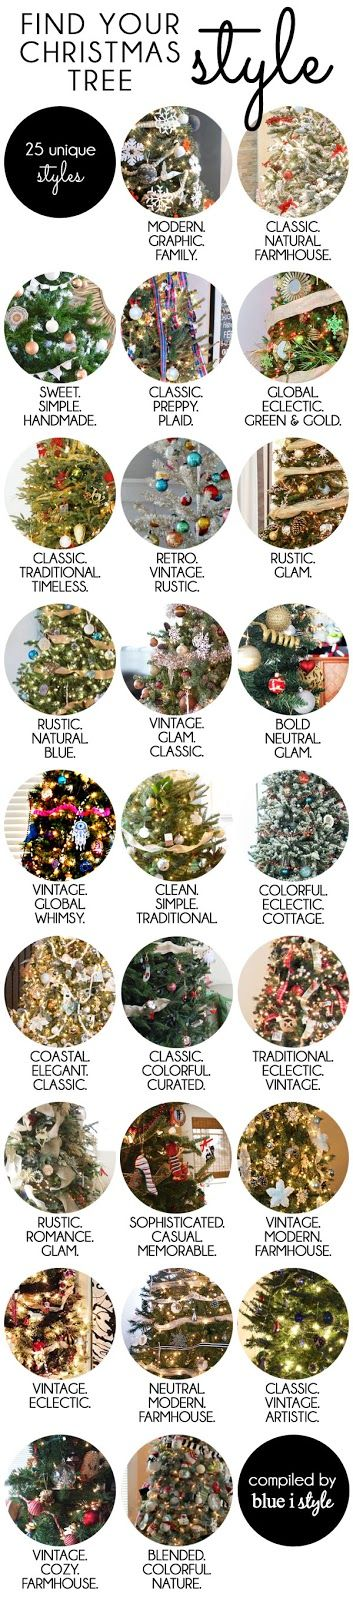 Want to give your Christmas Tree a new look that better fits your style? This is the best place to start! I've rounded up 25 unique Christmas Tree styles to inspire you!